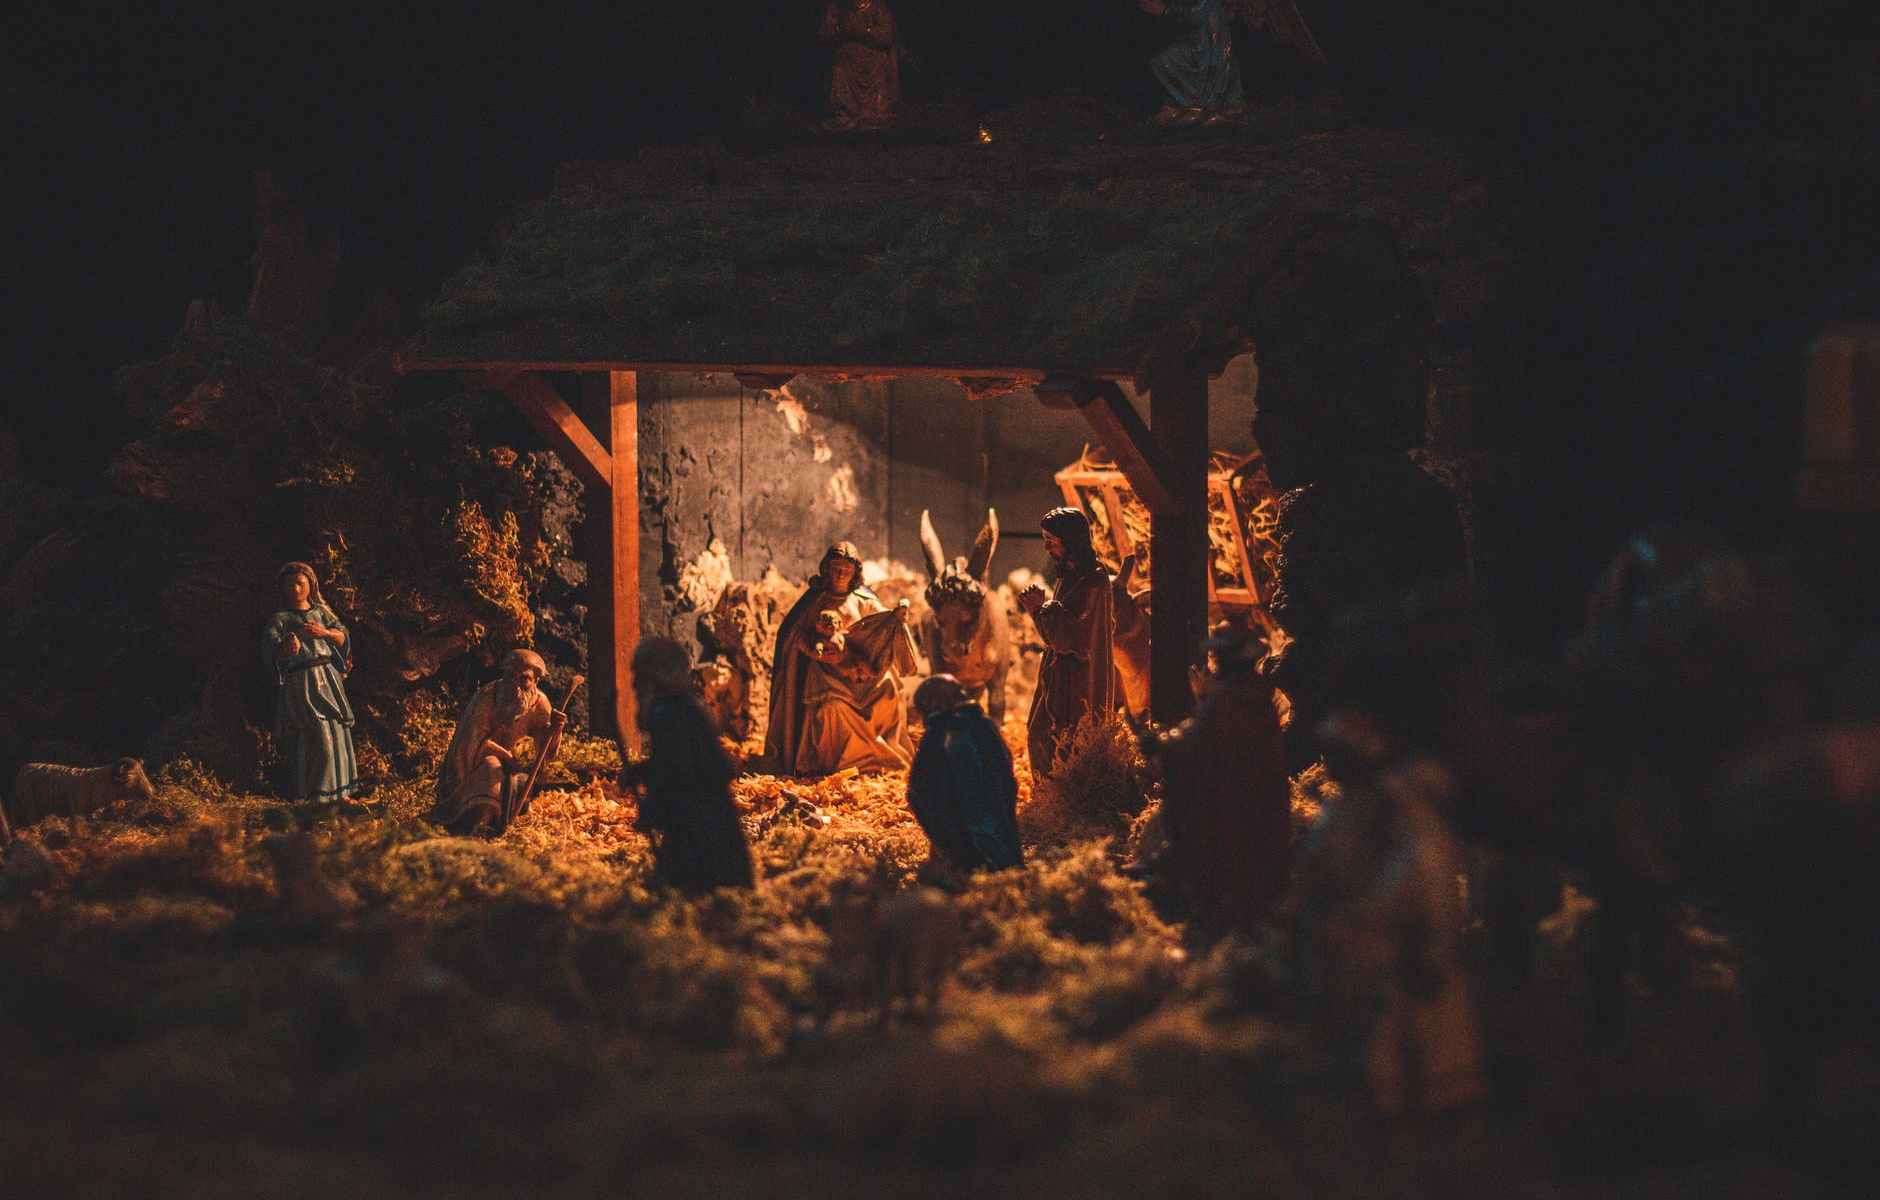 scene of birth of christ